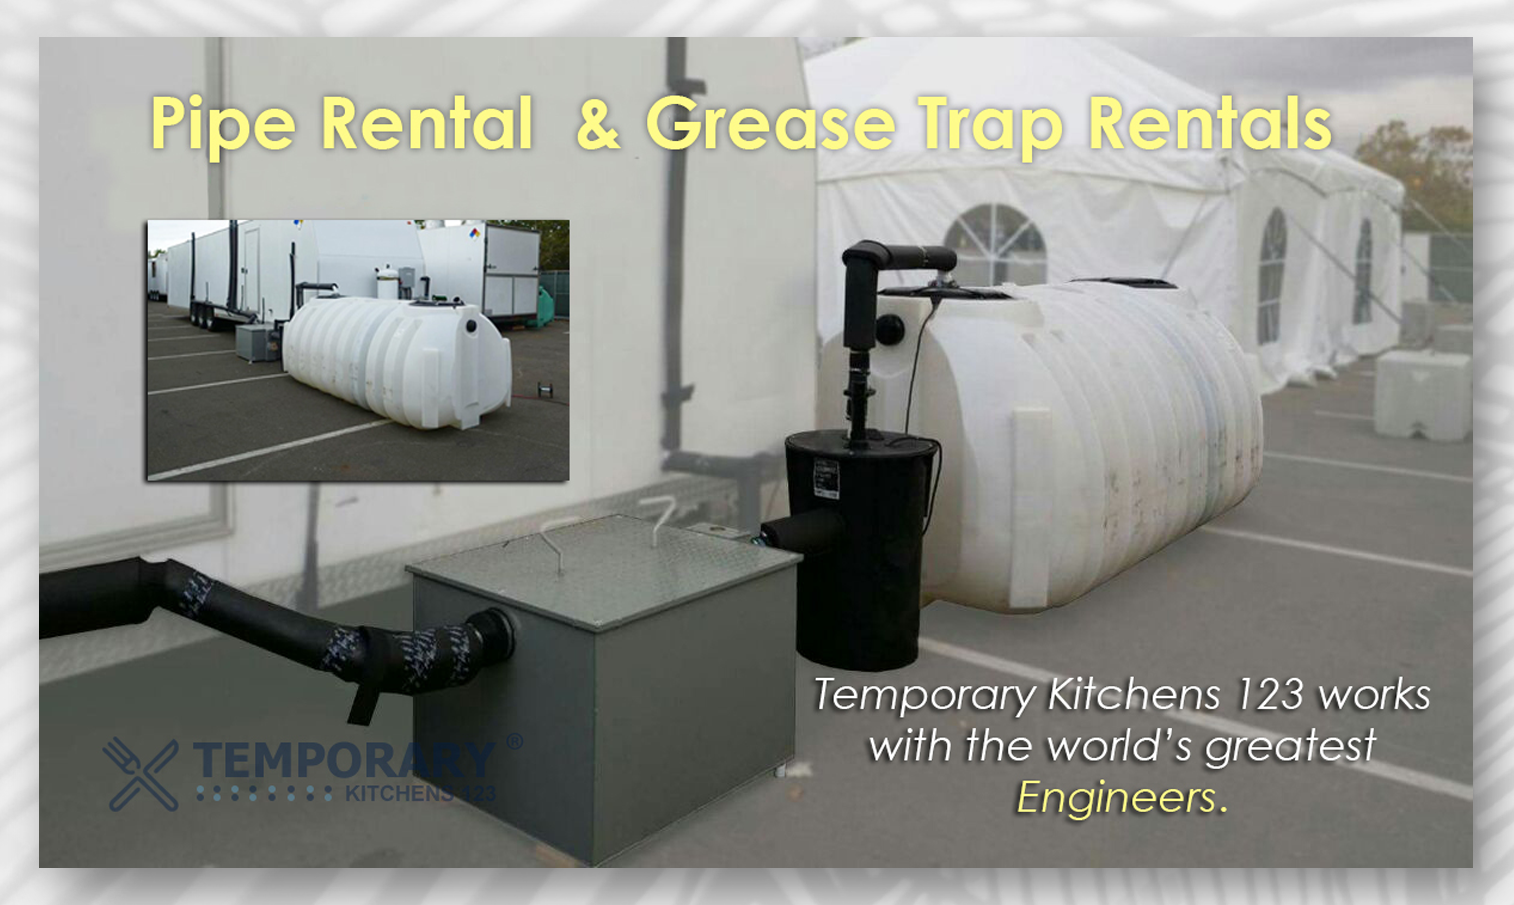 grease trap; pipe rental; temporary kitchens 123